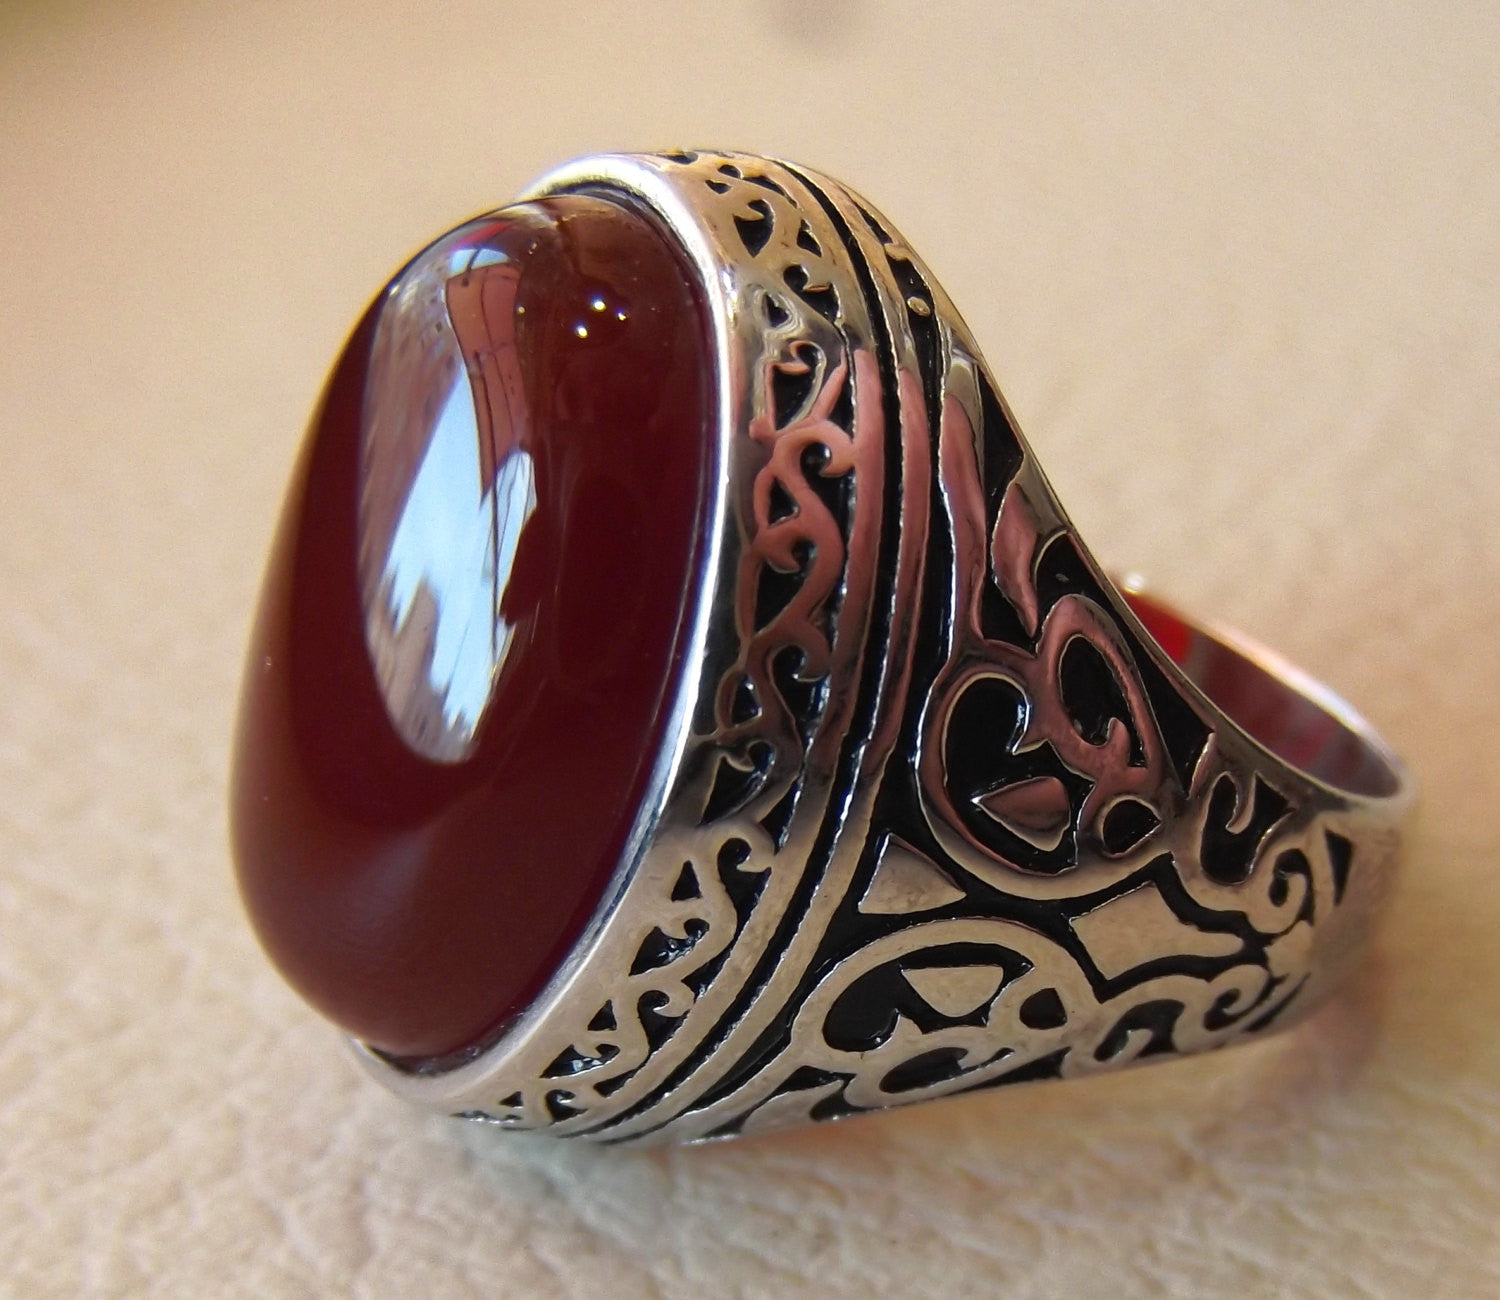 aqeeq natural liver agate carnelian semi precious stone oval red cabochon gem man ring sterling silver arabic middle eastern turkey style